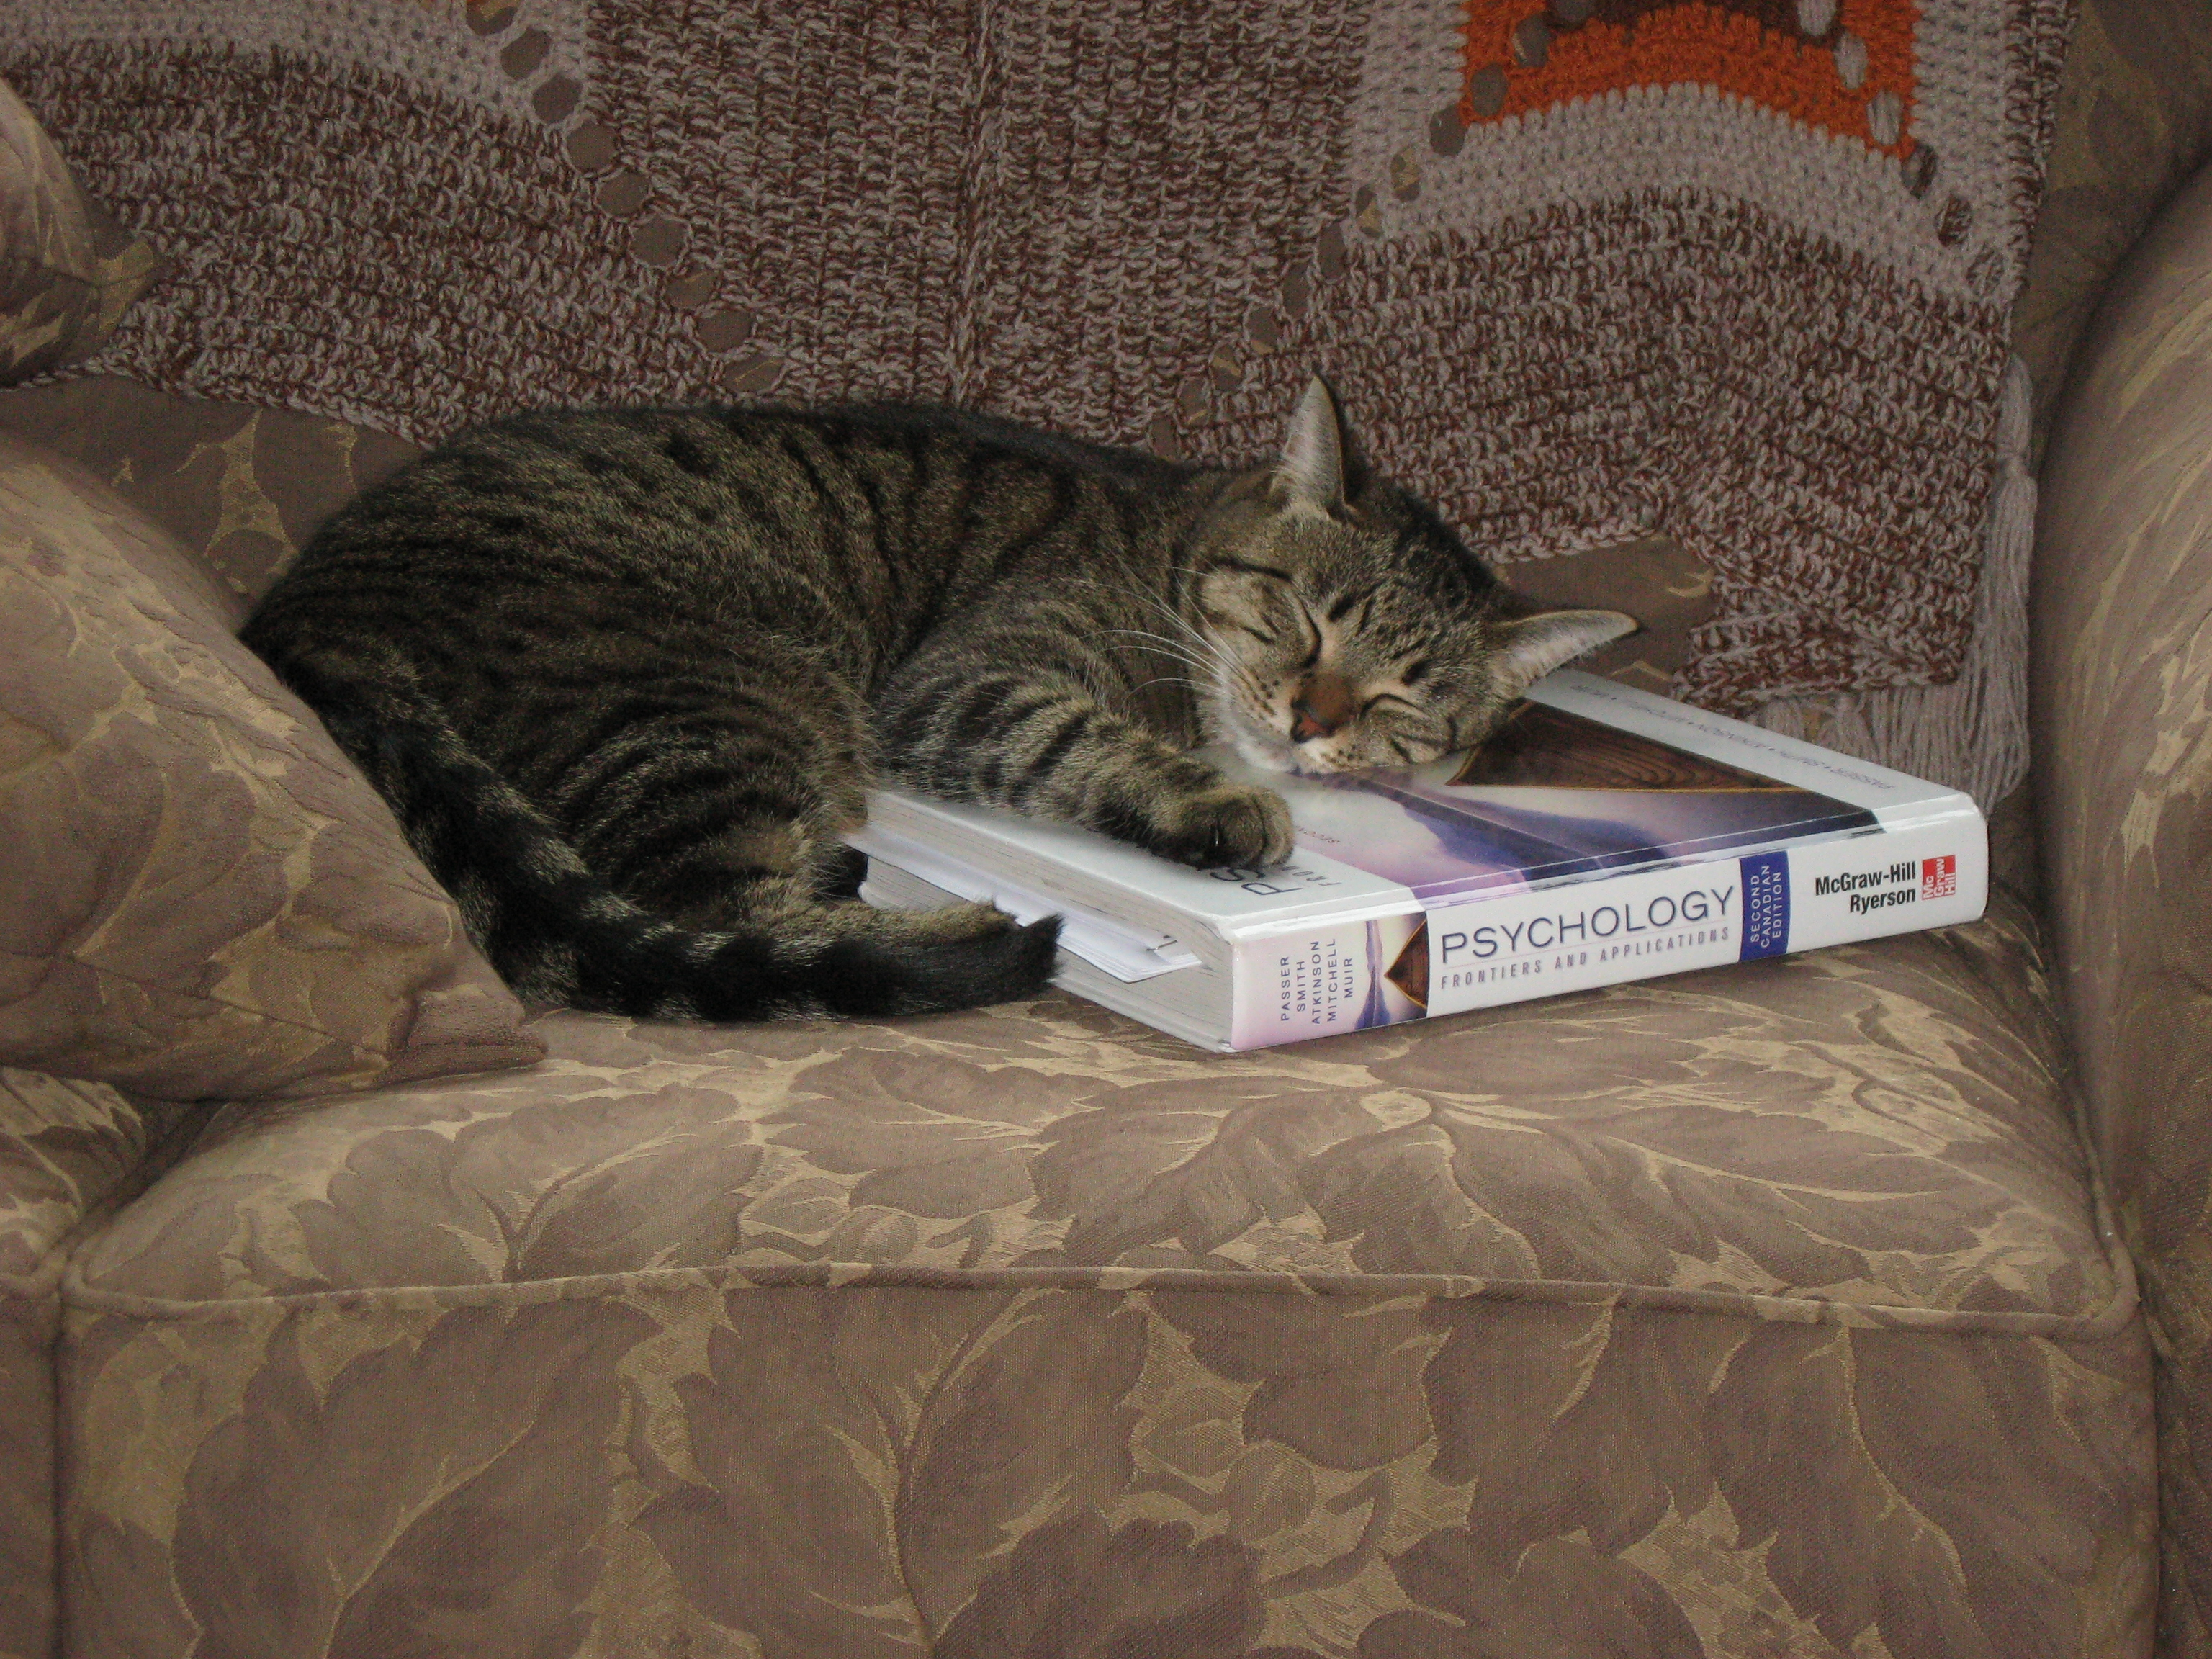 Tabby Cat Learns While Sleeping